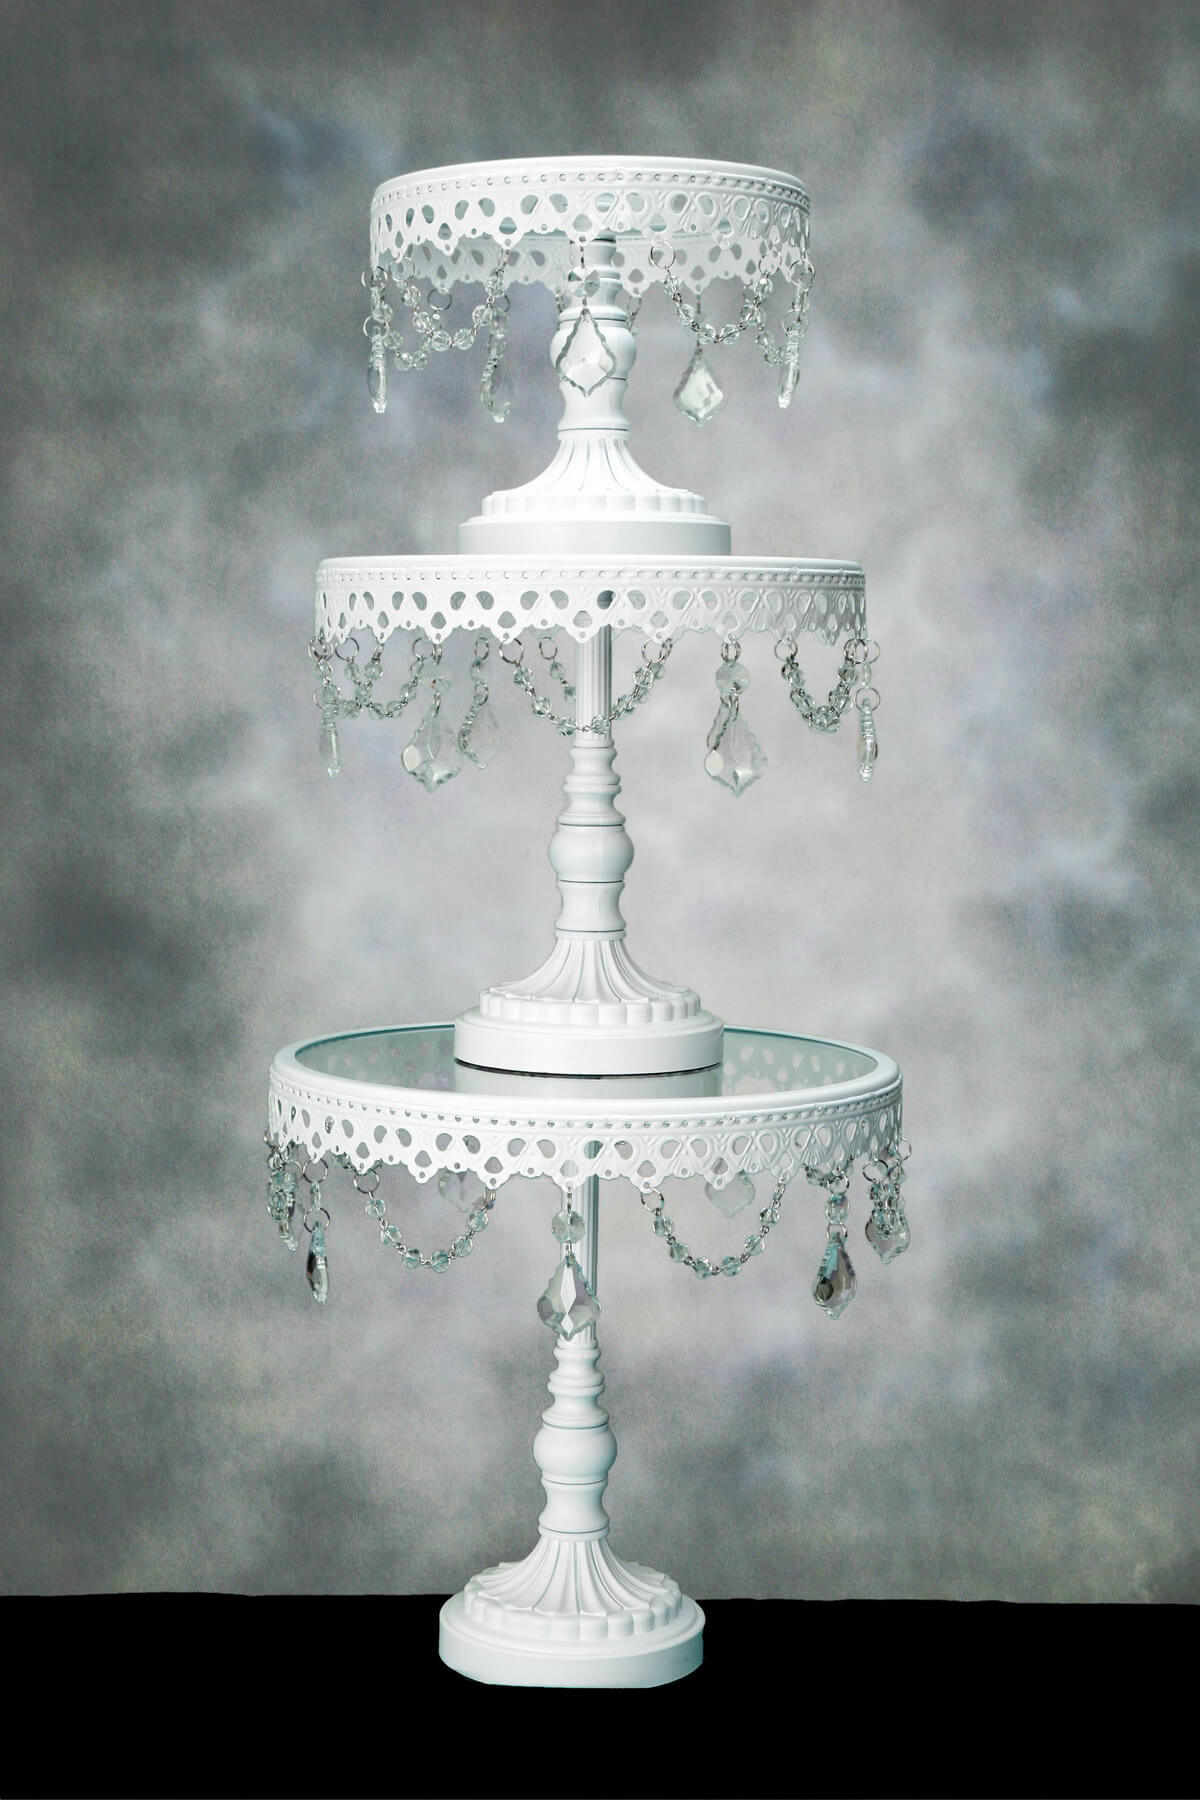 Crystal Cake Stands Pedestal Set of 3